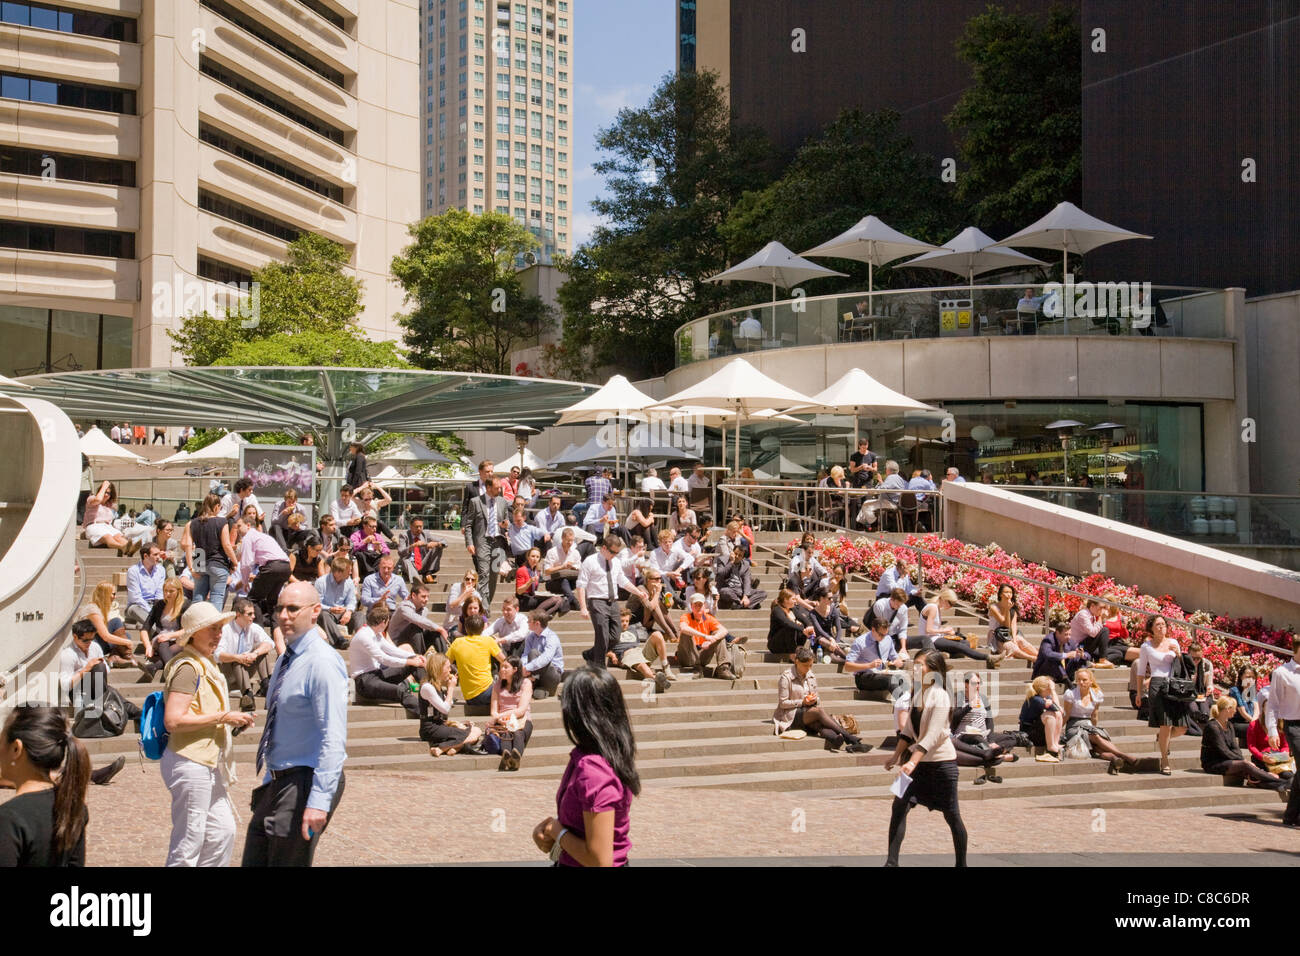 office workers taking their lunch break, steps of the MLC centre in sydneys business district,australia - Stock Image